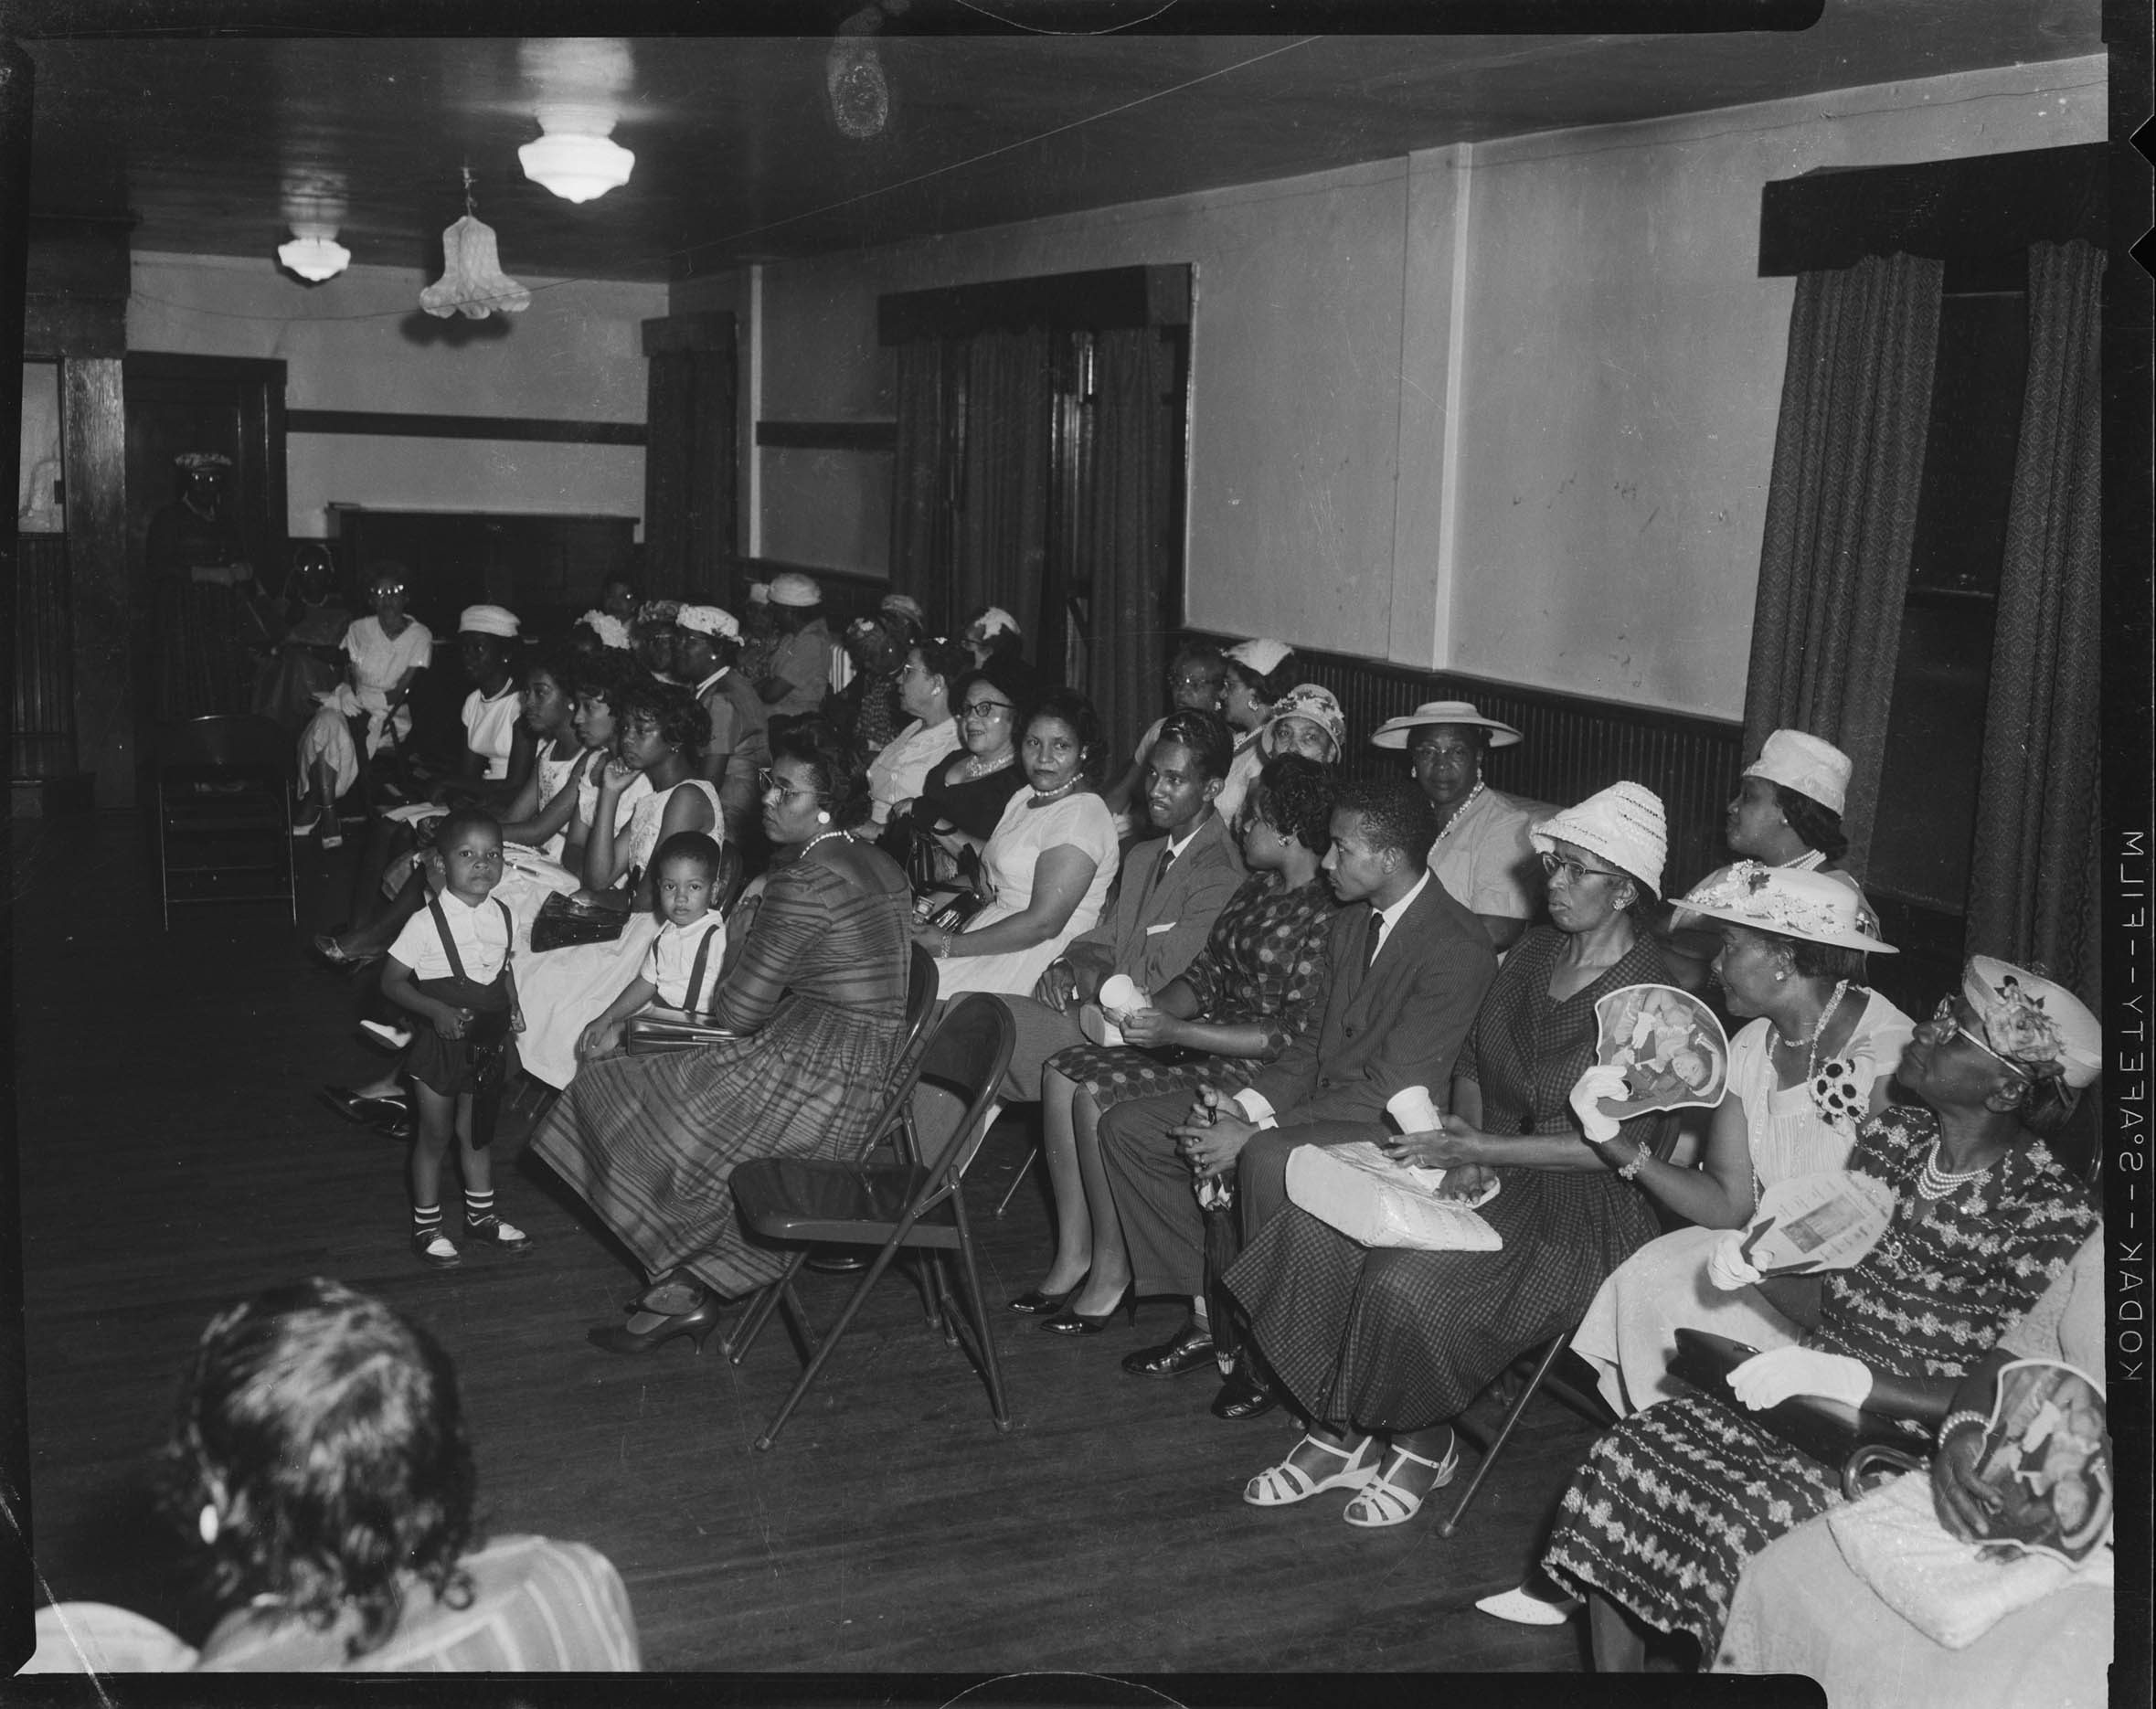 Women Men And Children Including Two Women Fanning Themselves Seated On Metal Folding Chairs Possibly For Wedding Reception In Interior With Crepe Paper Bell Decoration Cmoa Collection